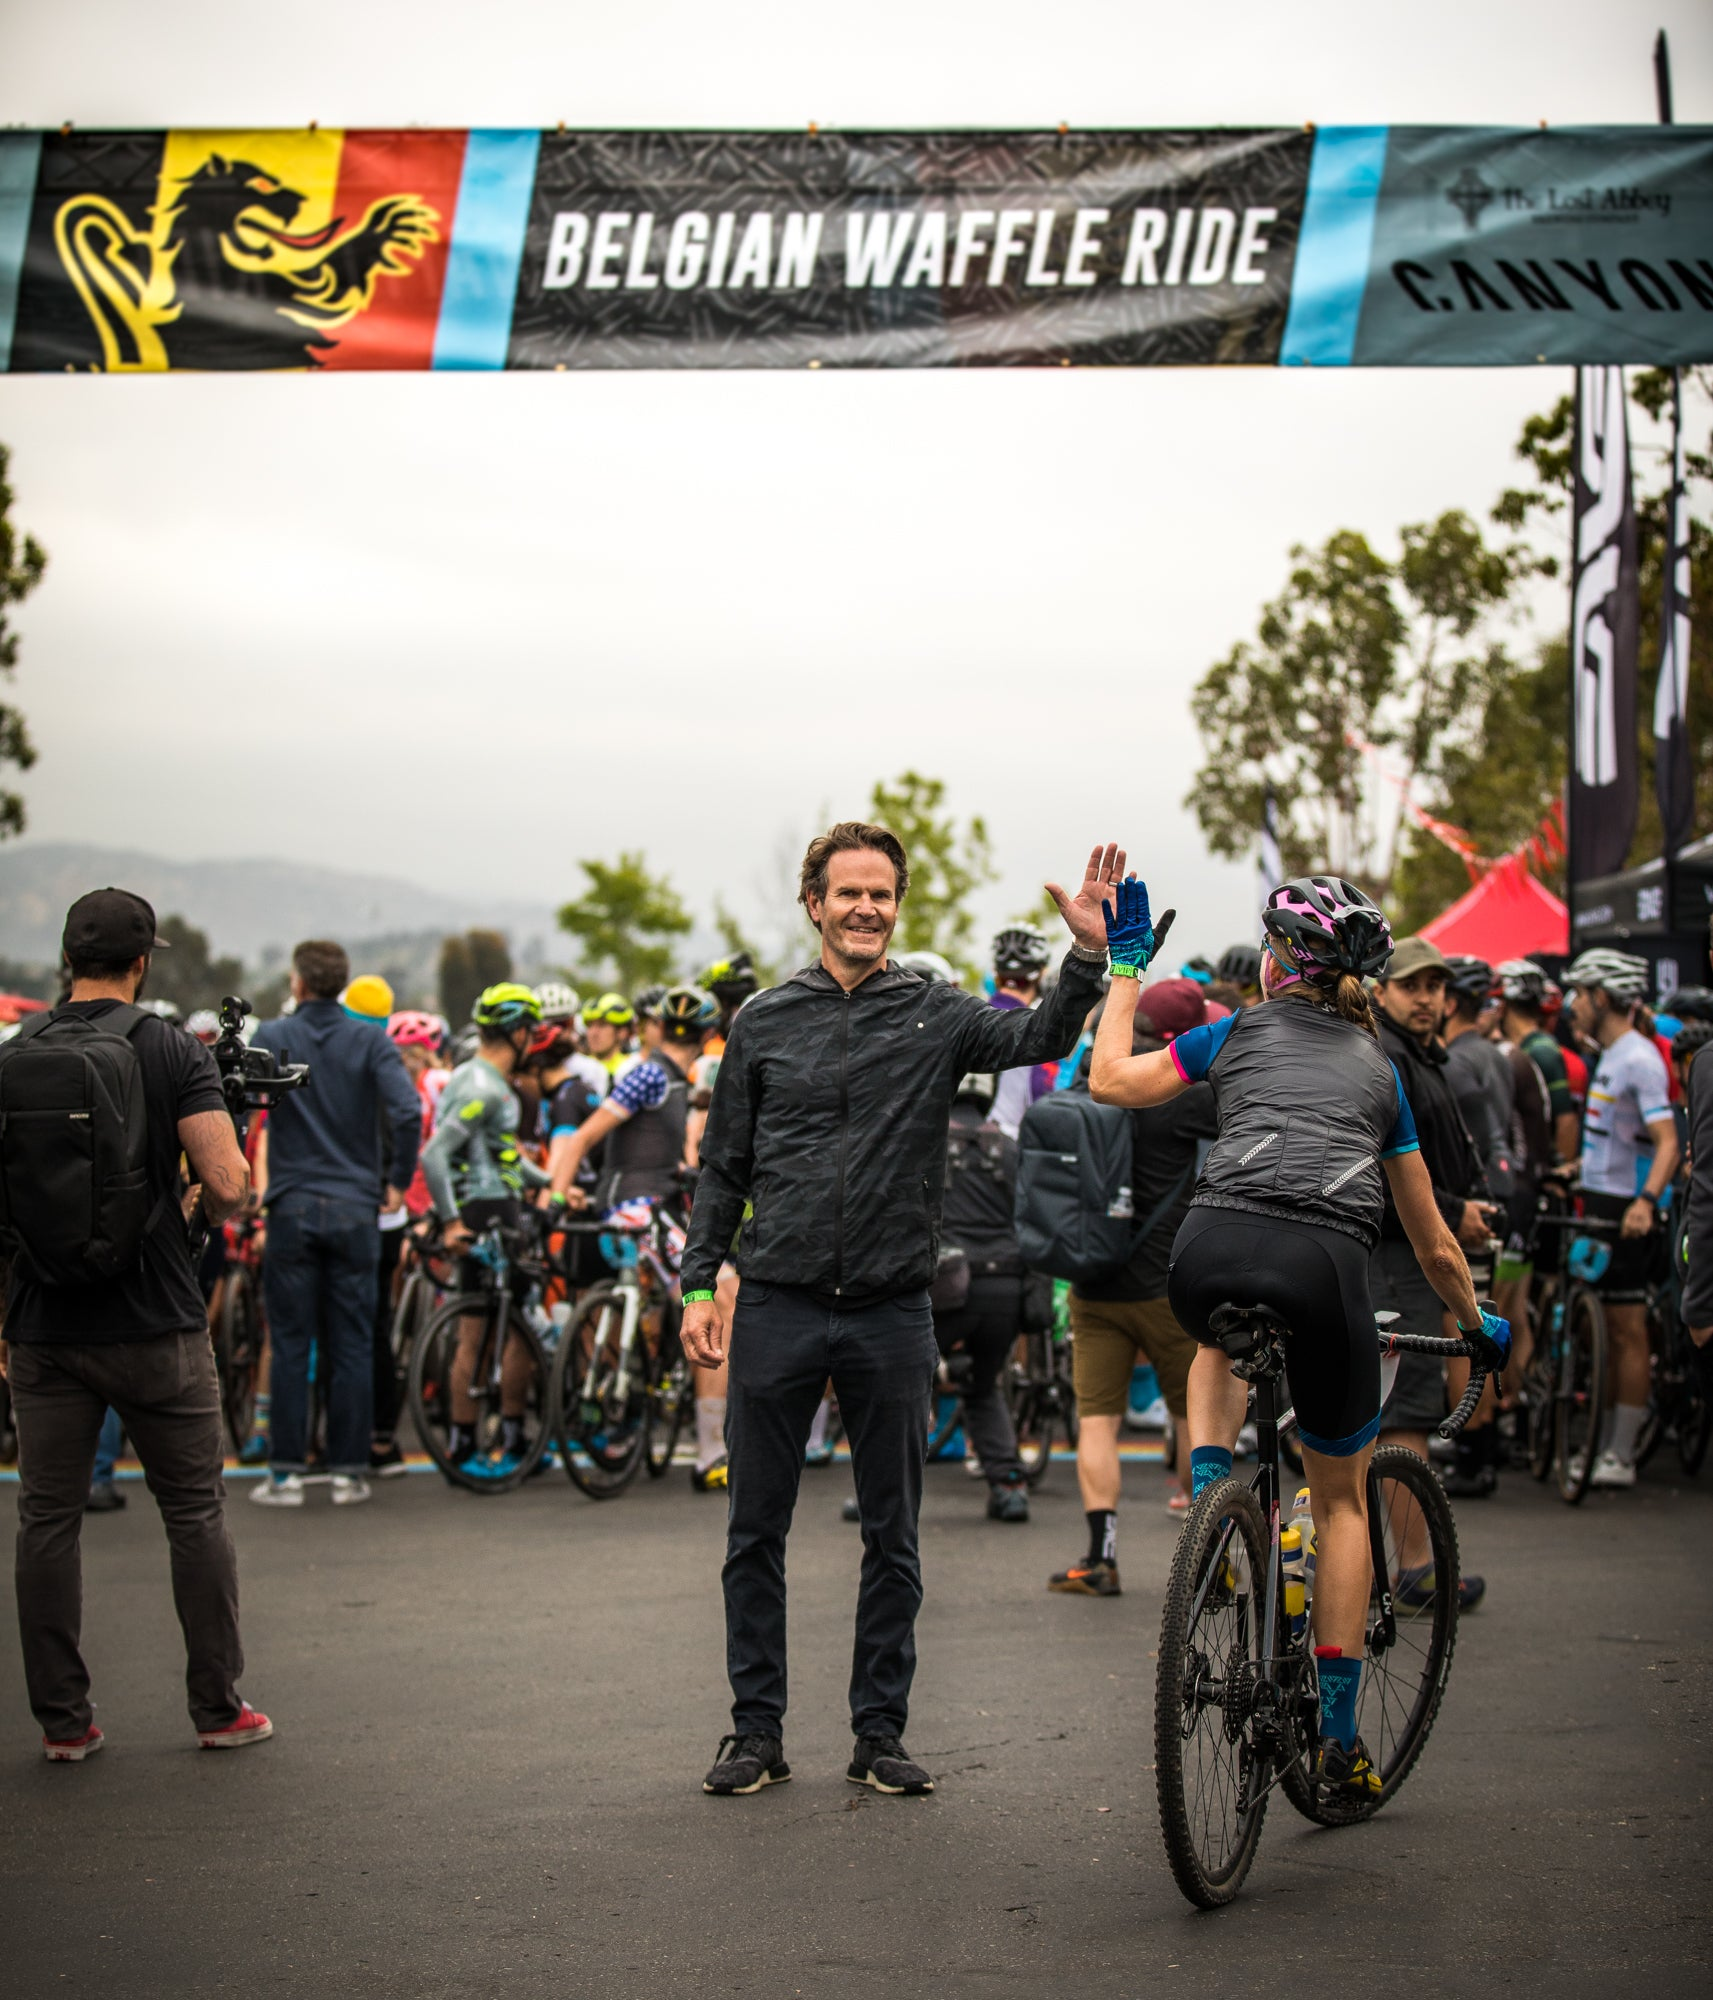 Marckx at Belgian Waffle Ride